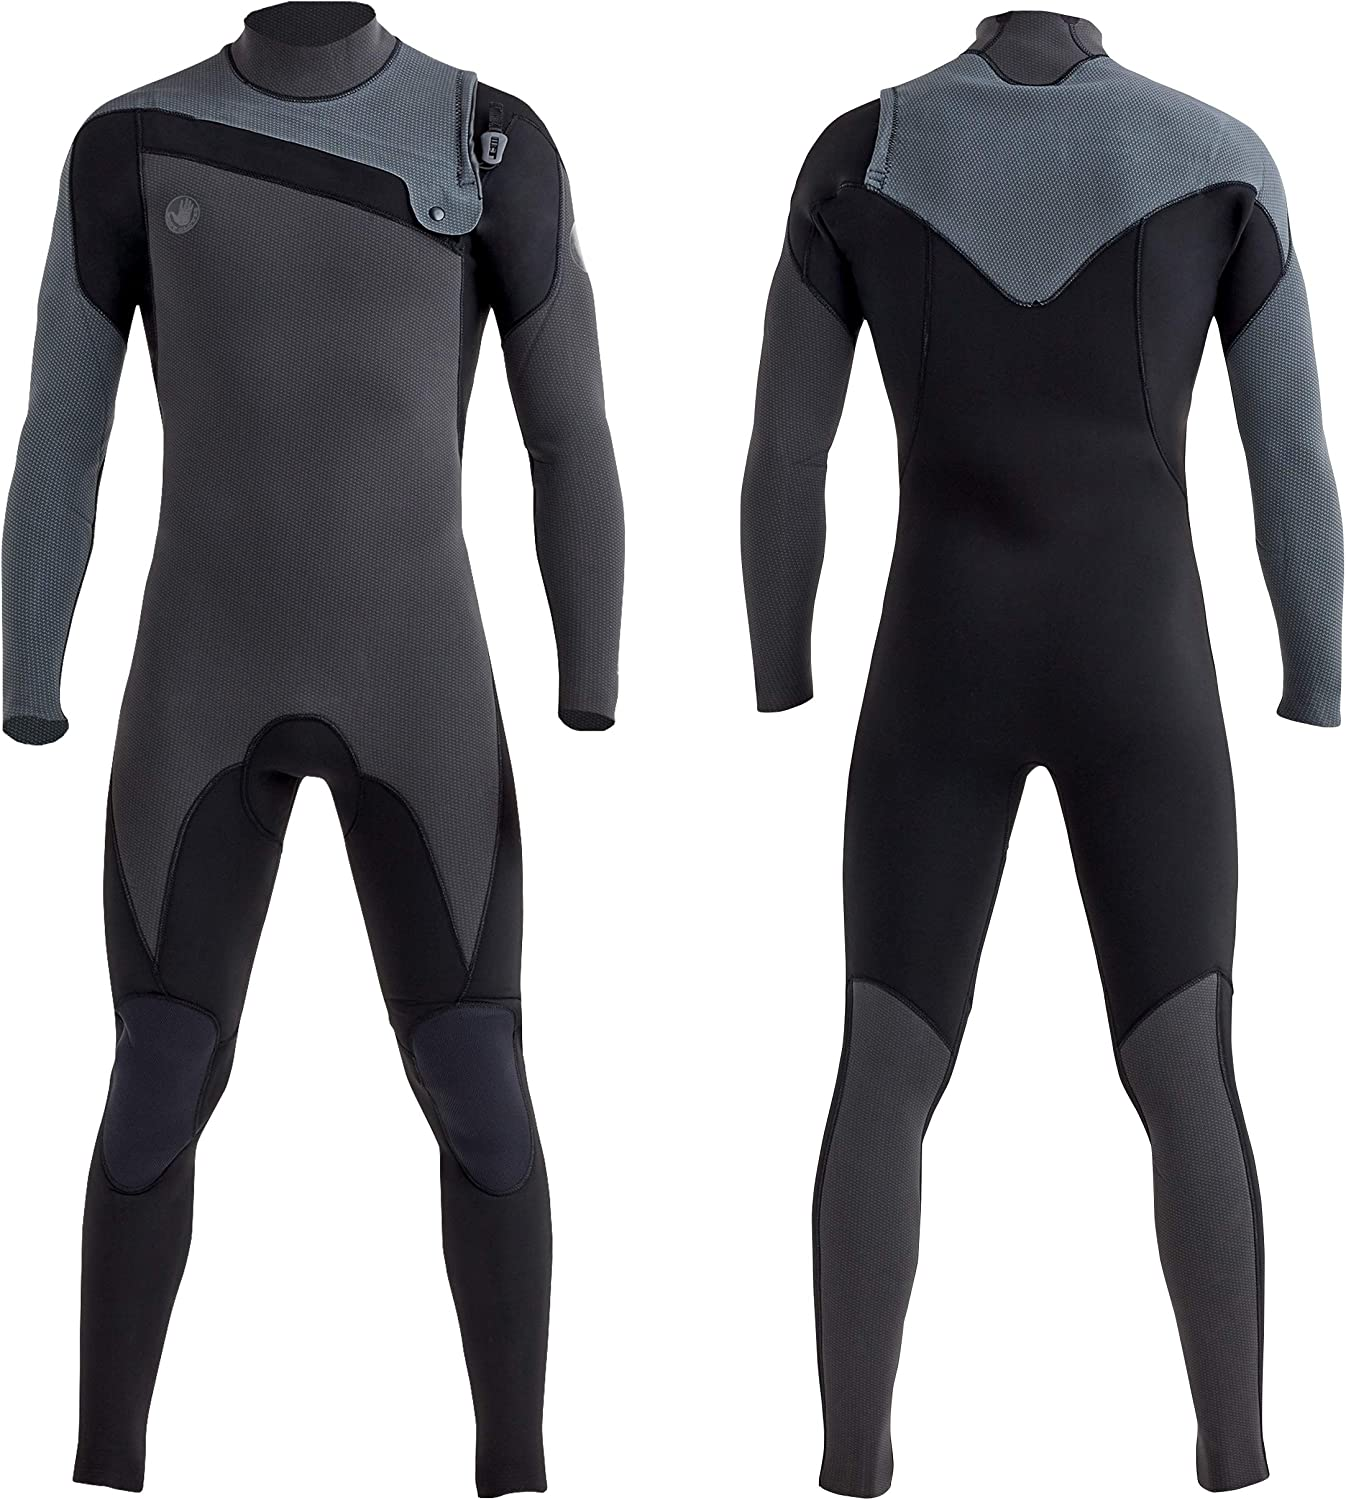 Scubadonkey Surfing Full Body Wetsuit for Men 3mm Neoprene Shark Skin Chest Panel Super Stretch Neck and Cuffs